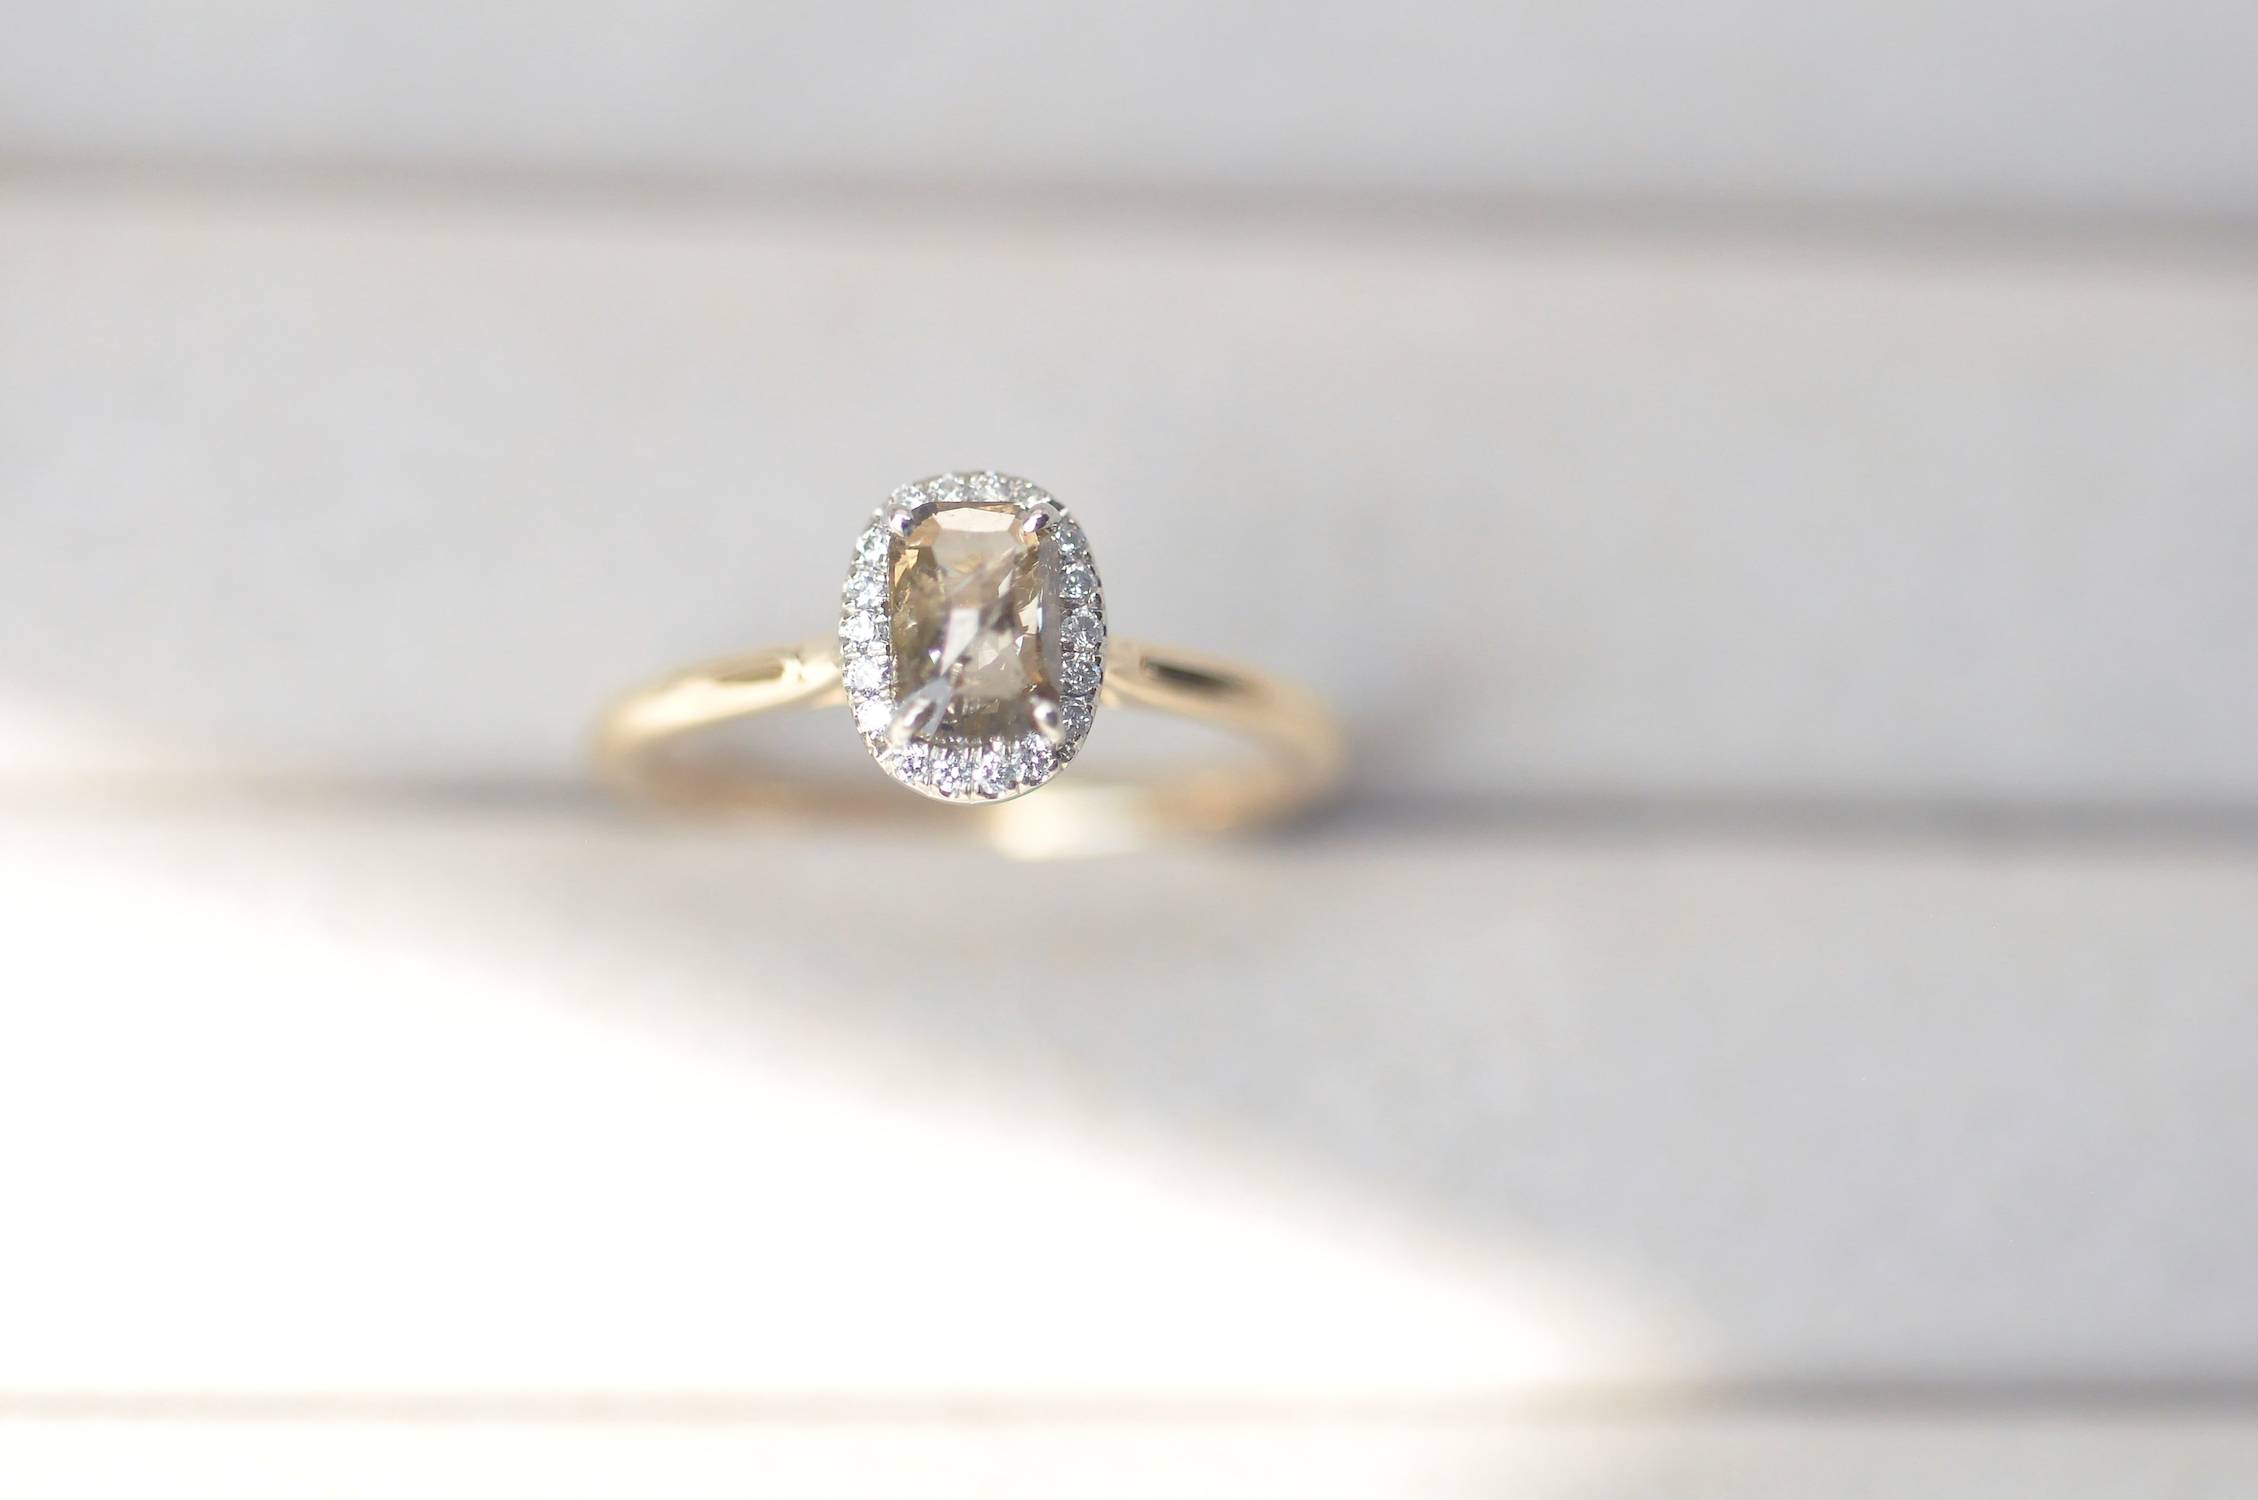 Grey Diamond Engagement Ring.jpg